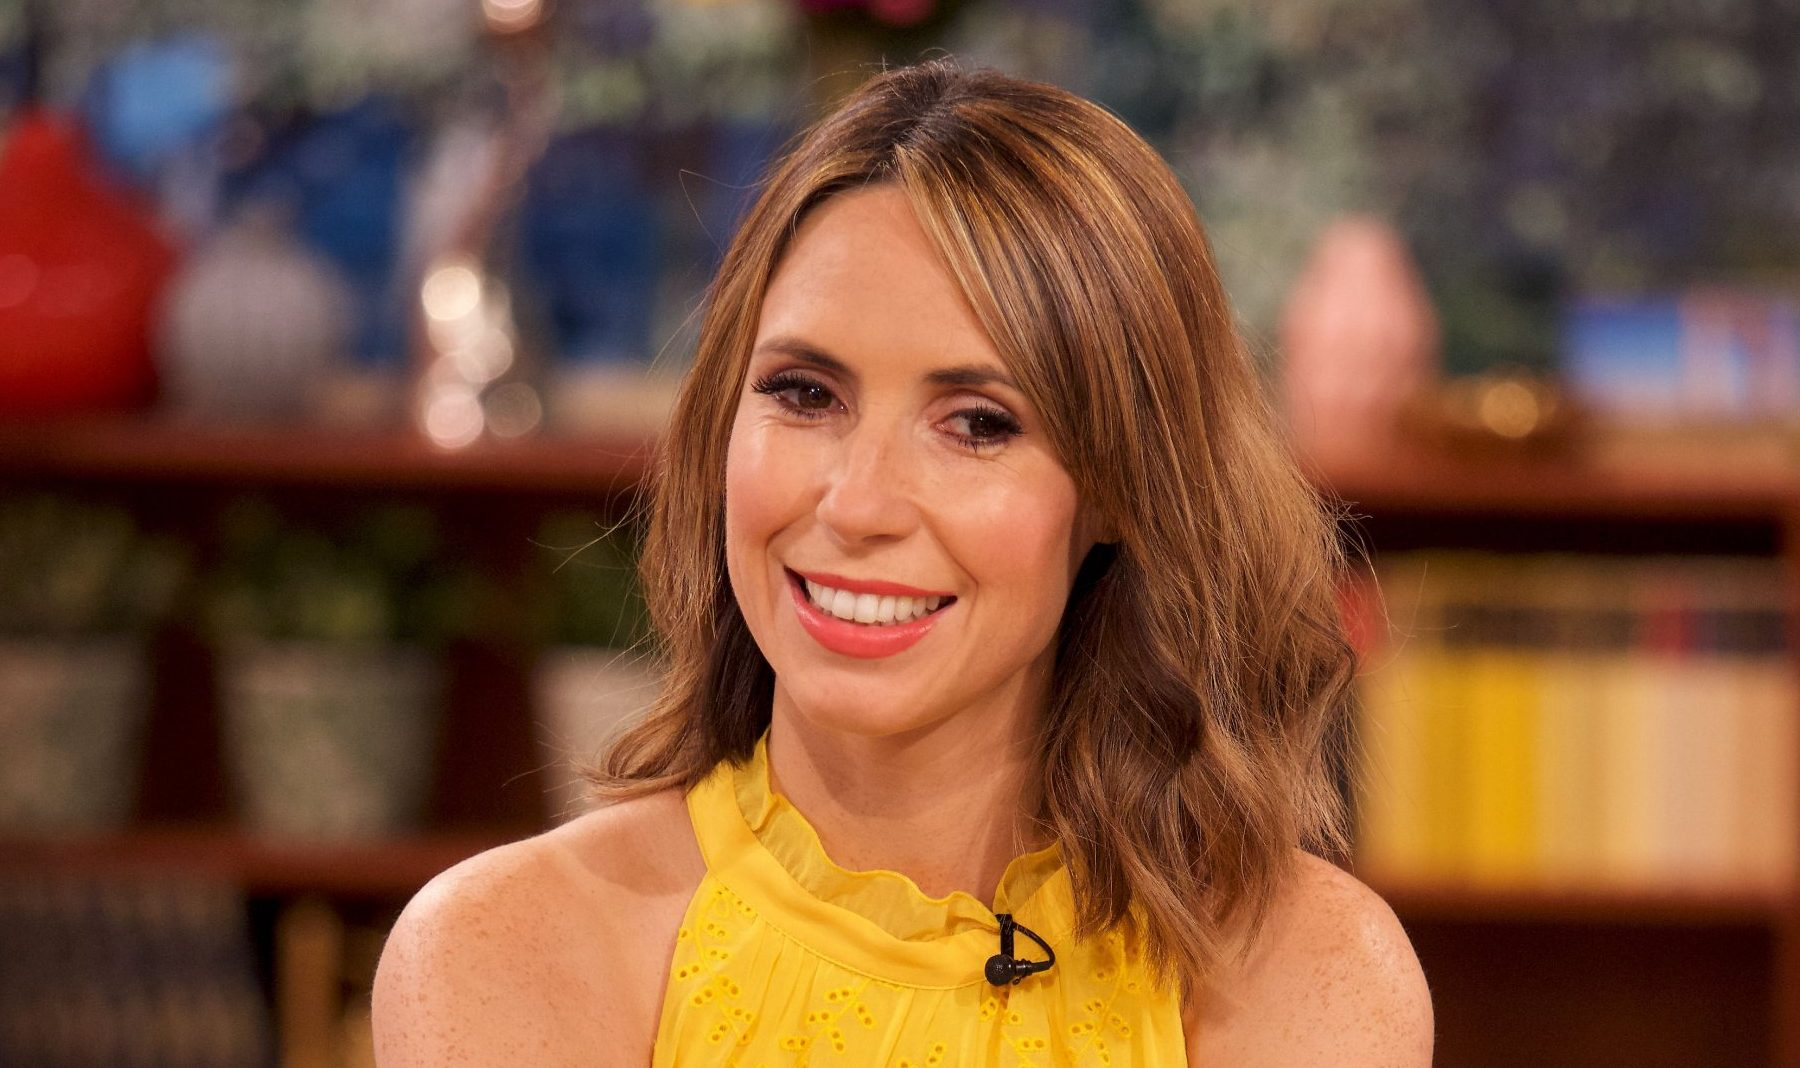 The One Show's Alex Jones gets dream gift as she goes on maternity leave